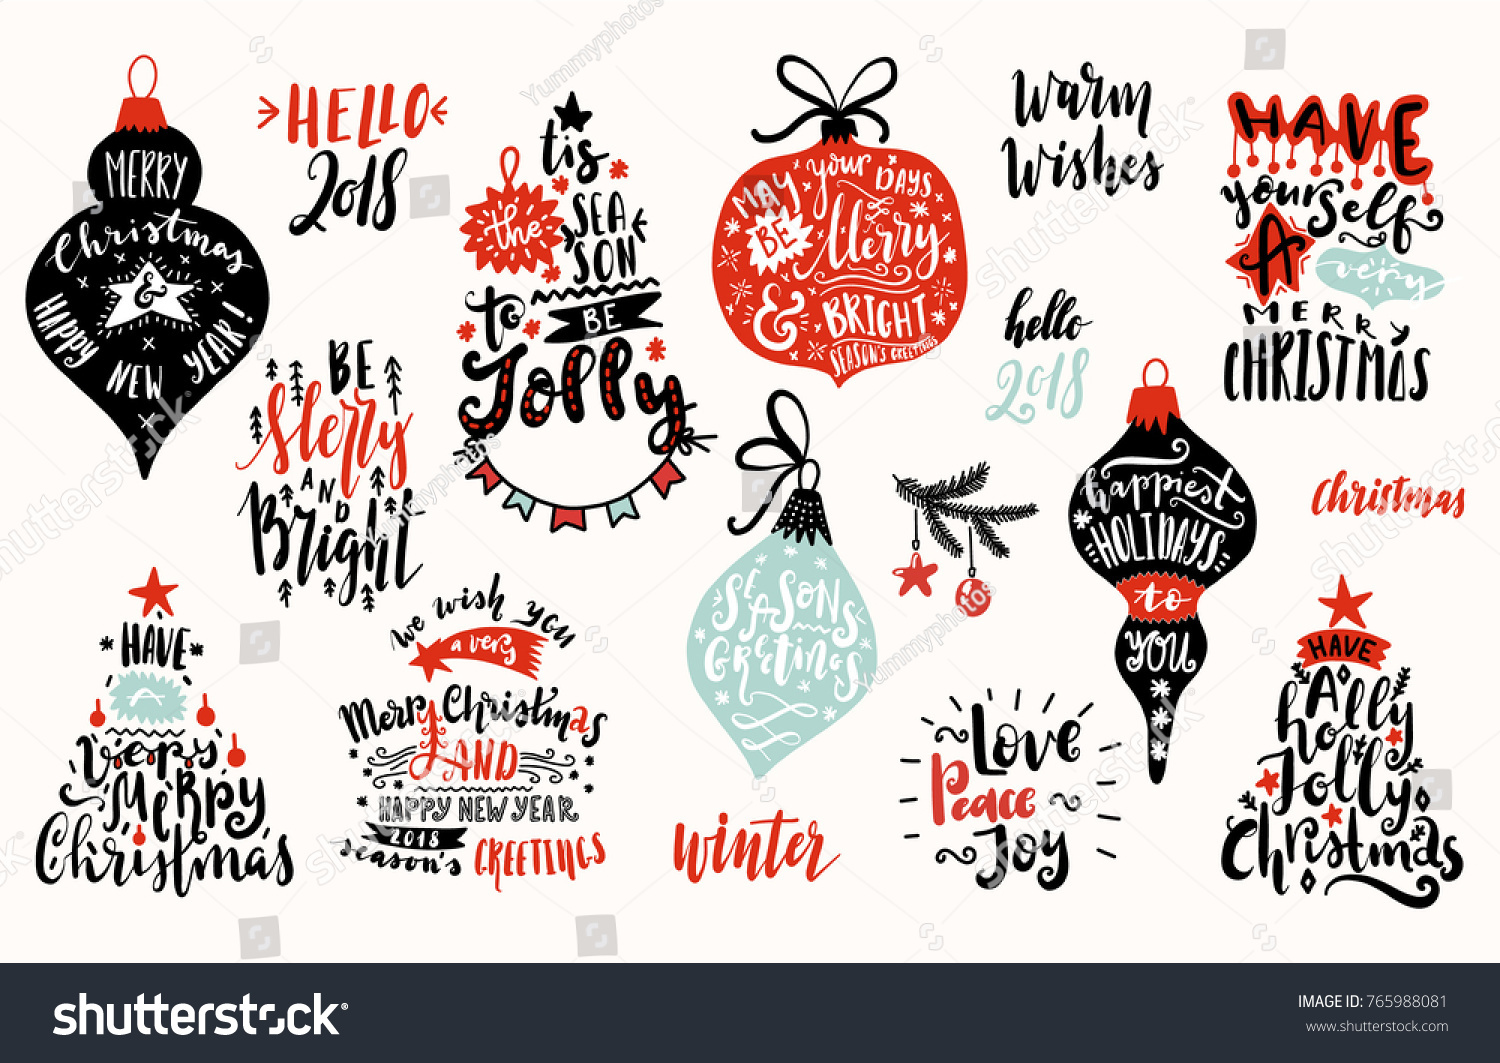 christmas and new year cartoon doodle lettering illustration greeting cards ideas